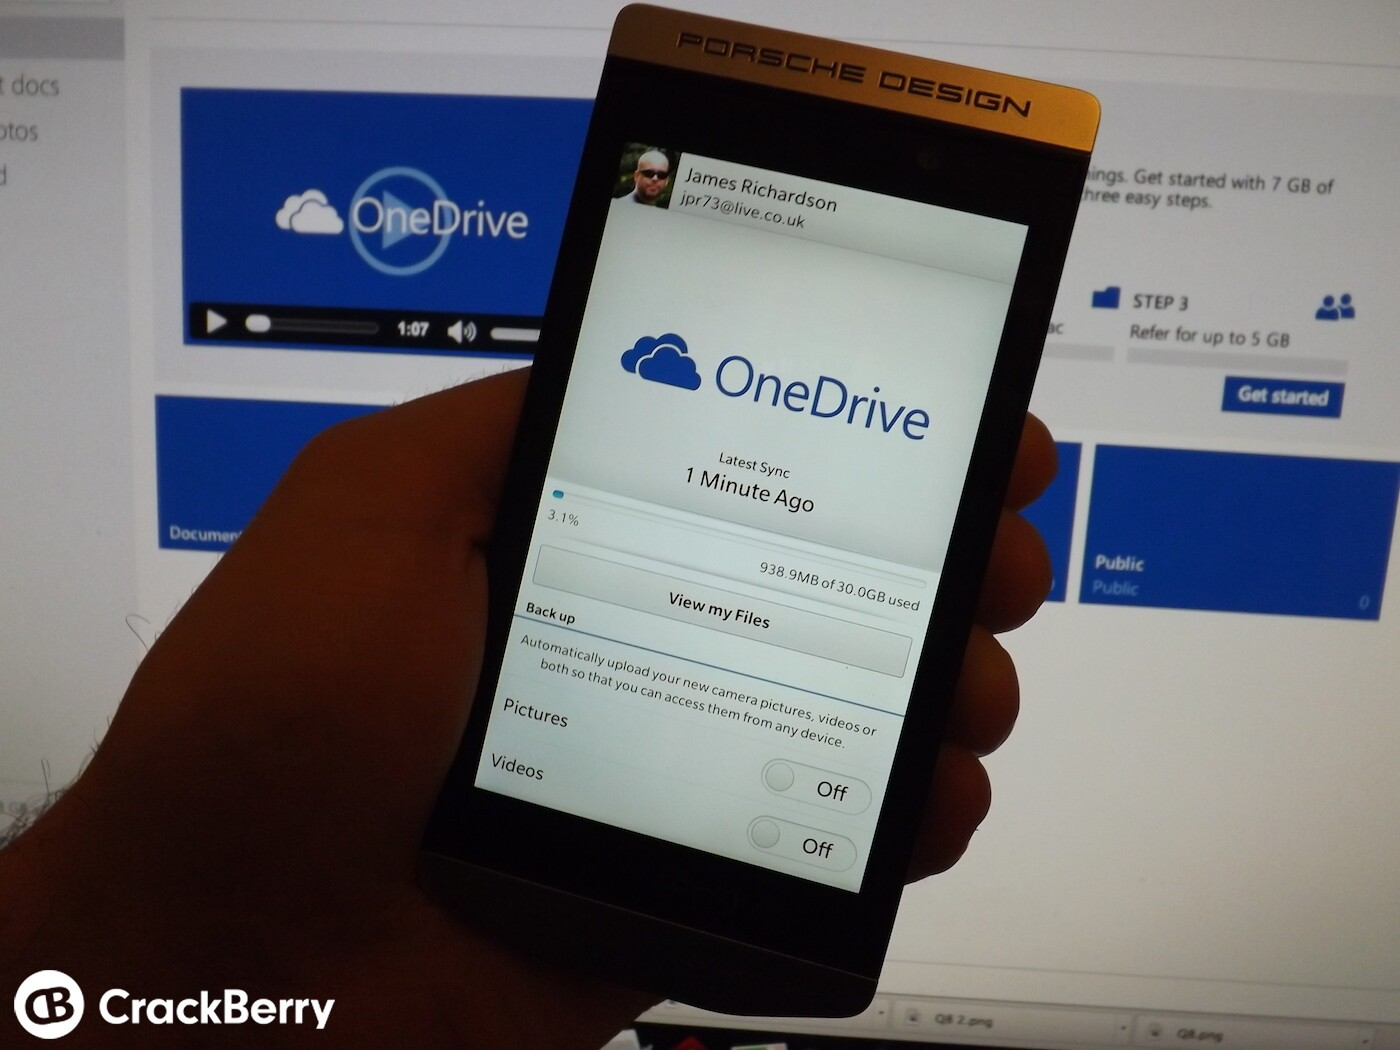 Microsoft begins to drop 2 GB file size limit for OneDrive